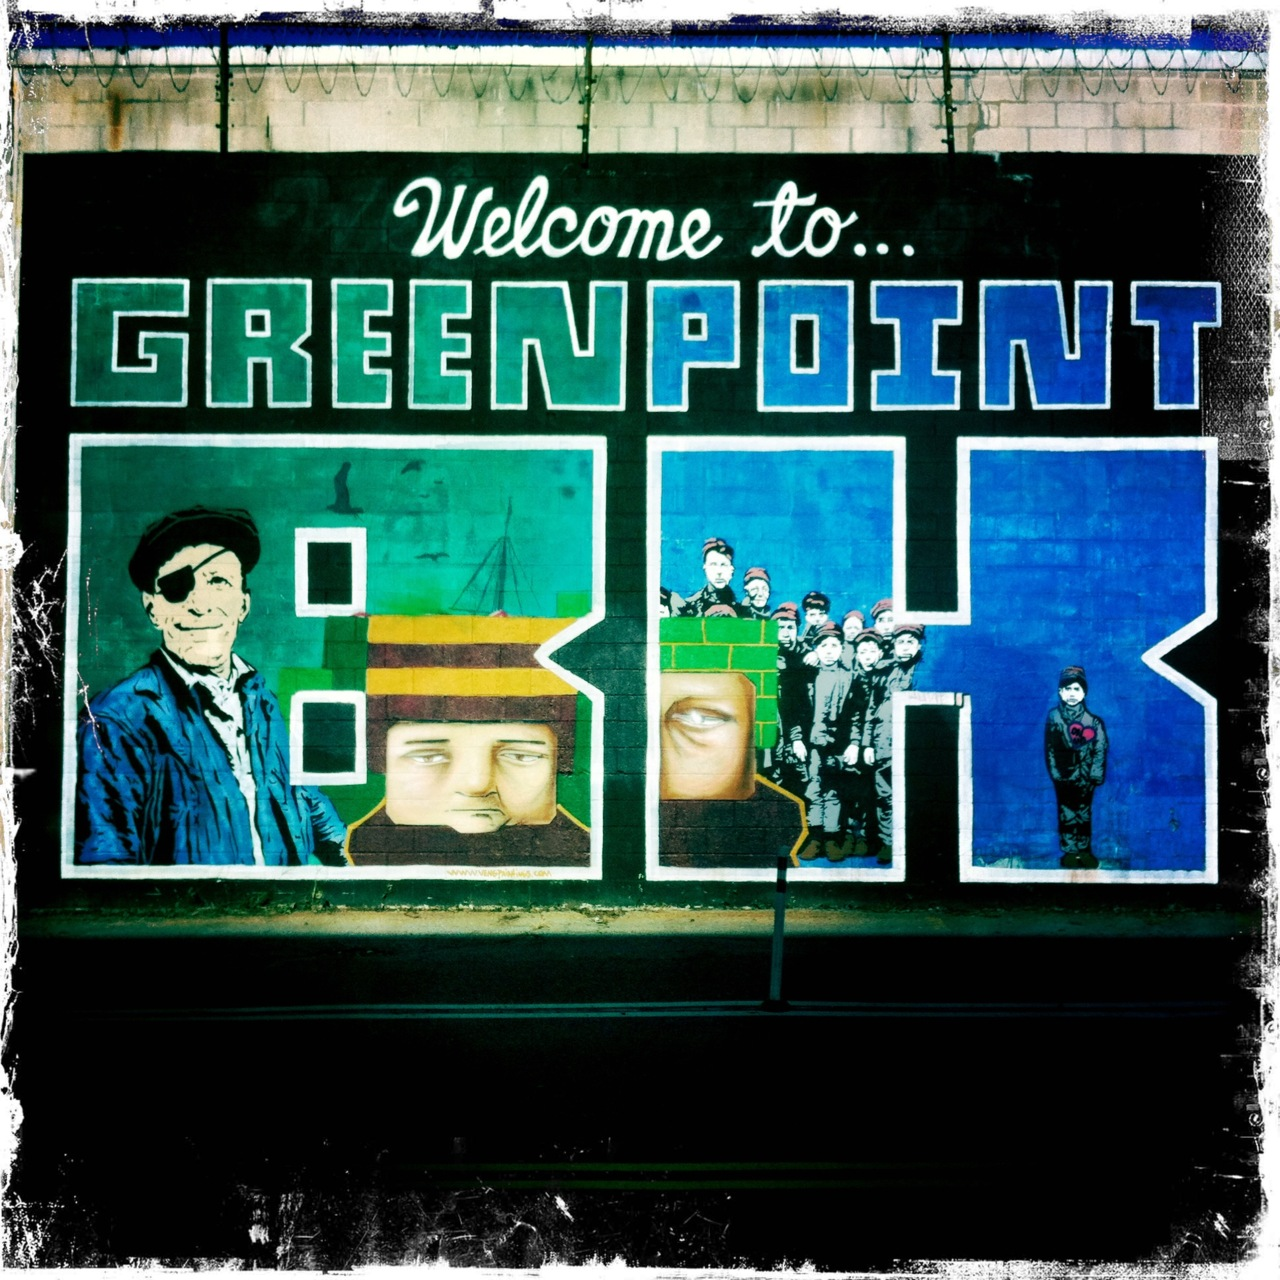 Greenpoint. Welcome.